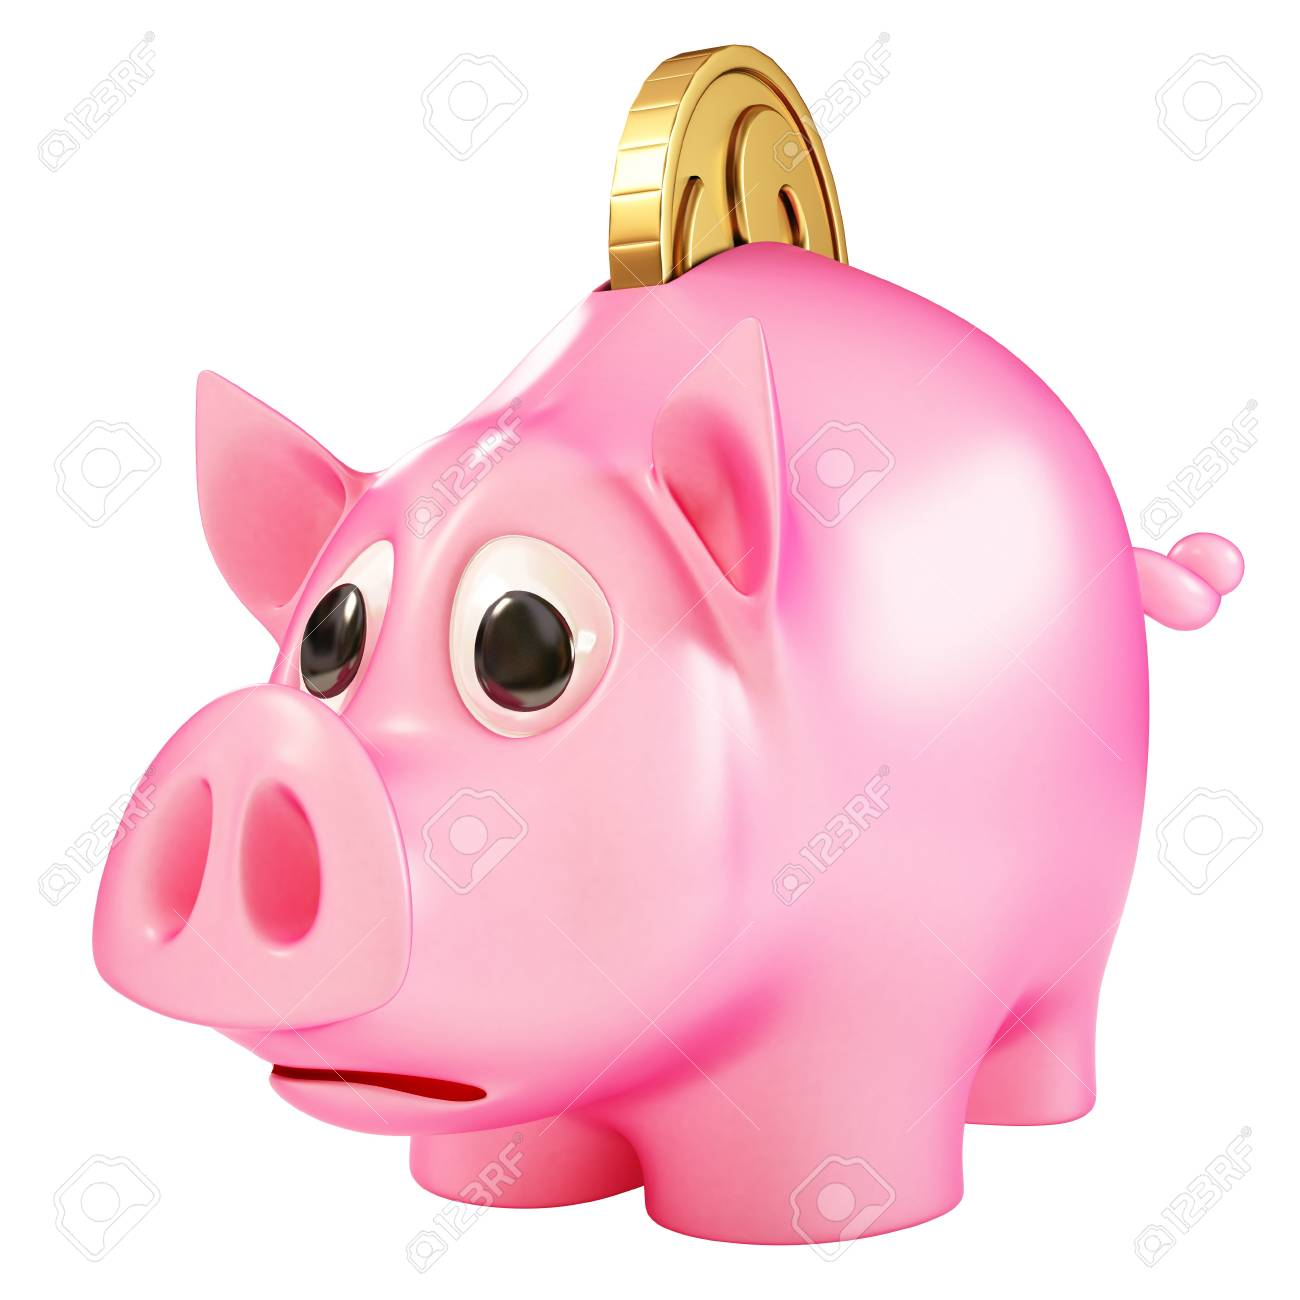 a piggy bank with a coin going into it. Stock Photo - 9651345